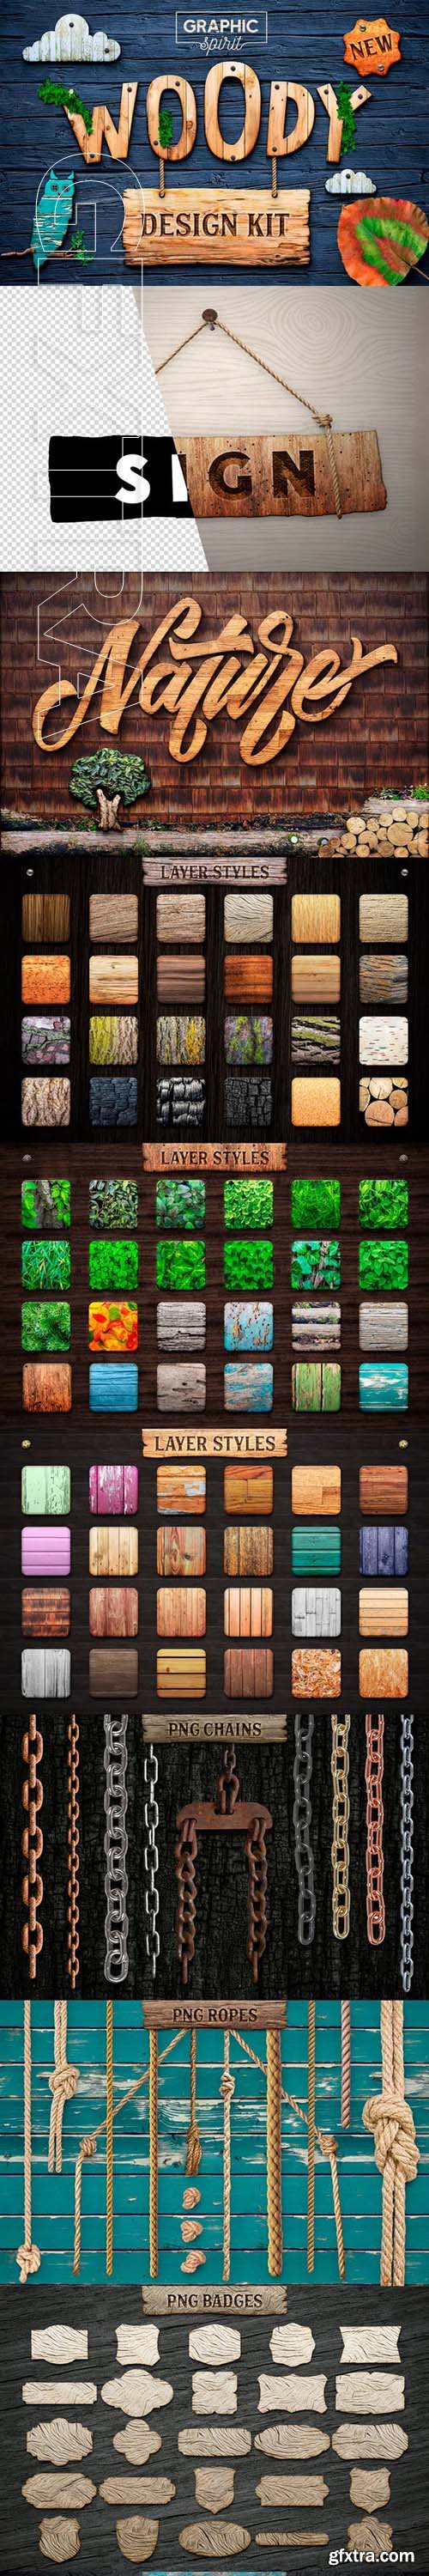 GraphicRiver - WOODY Texture Photoshop Styles KIT FULL 23551039